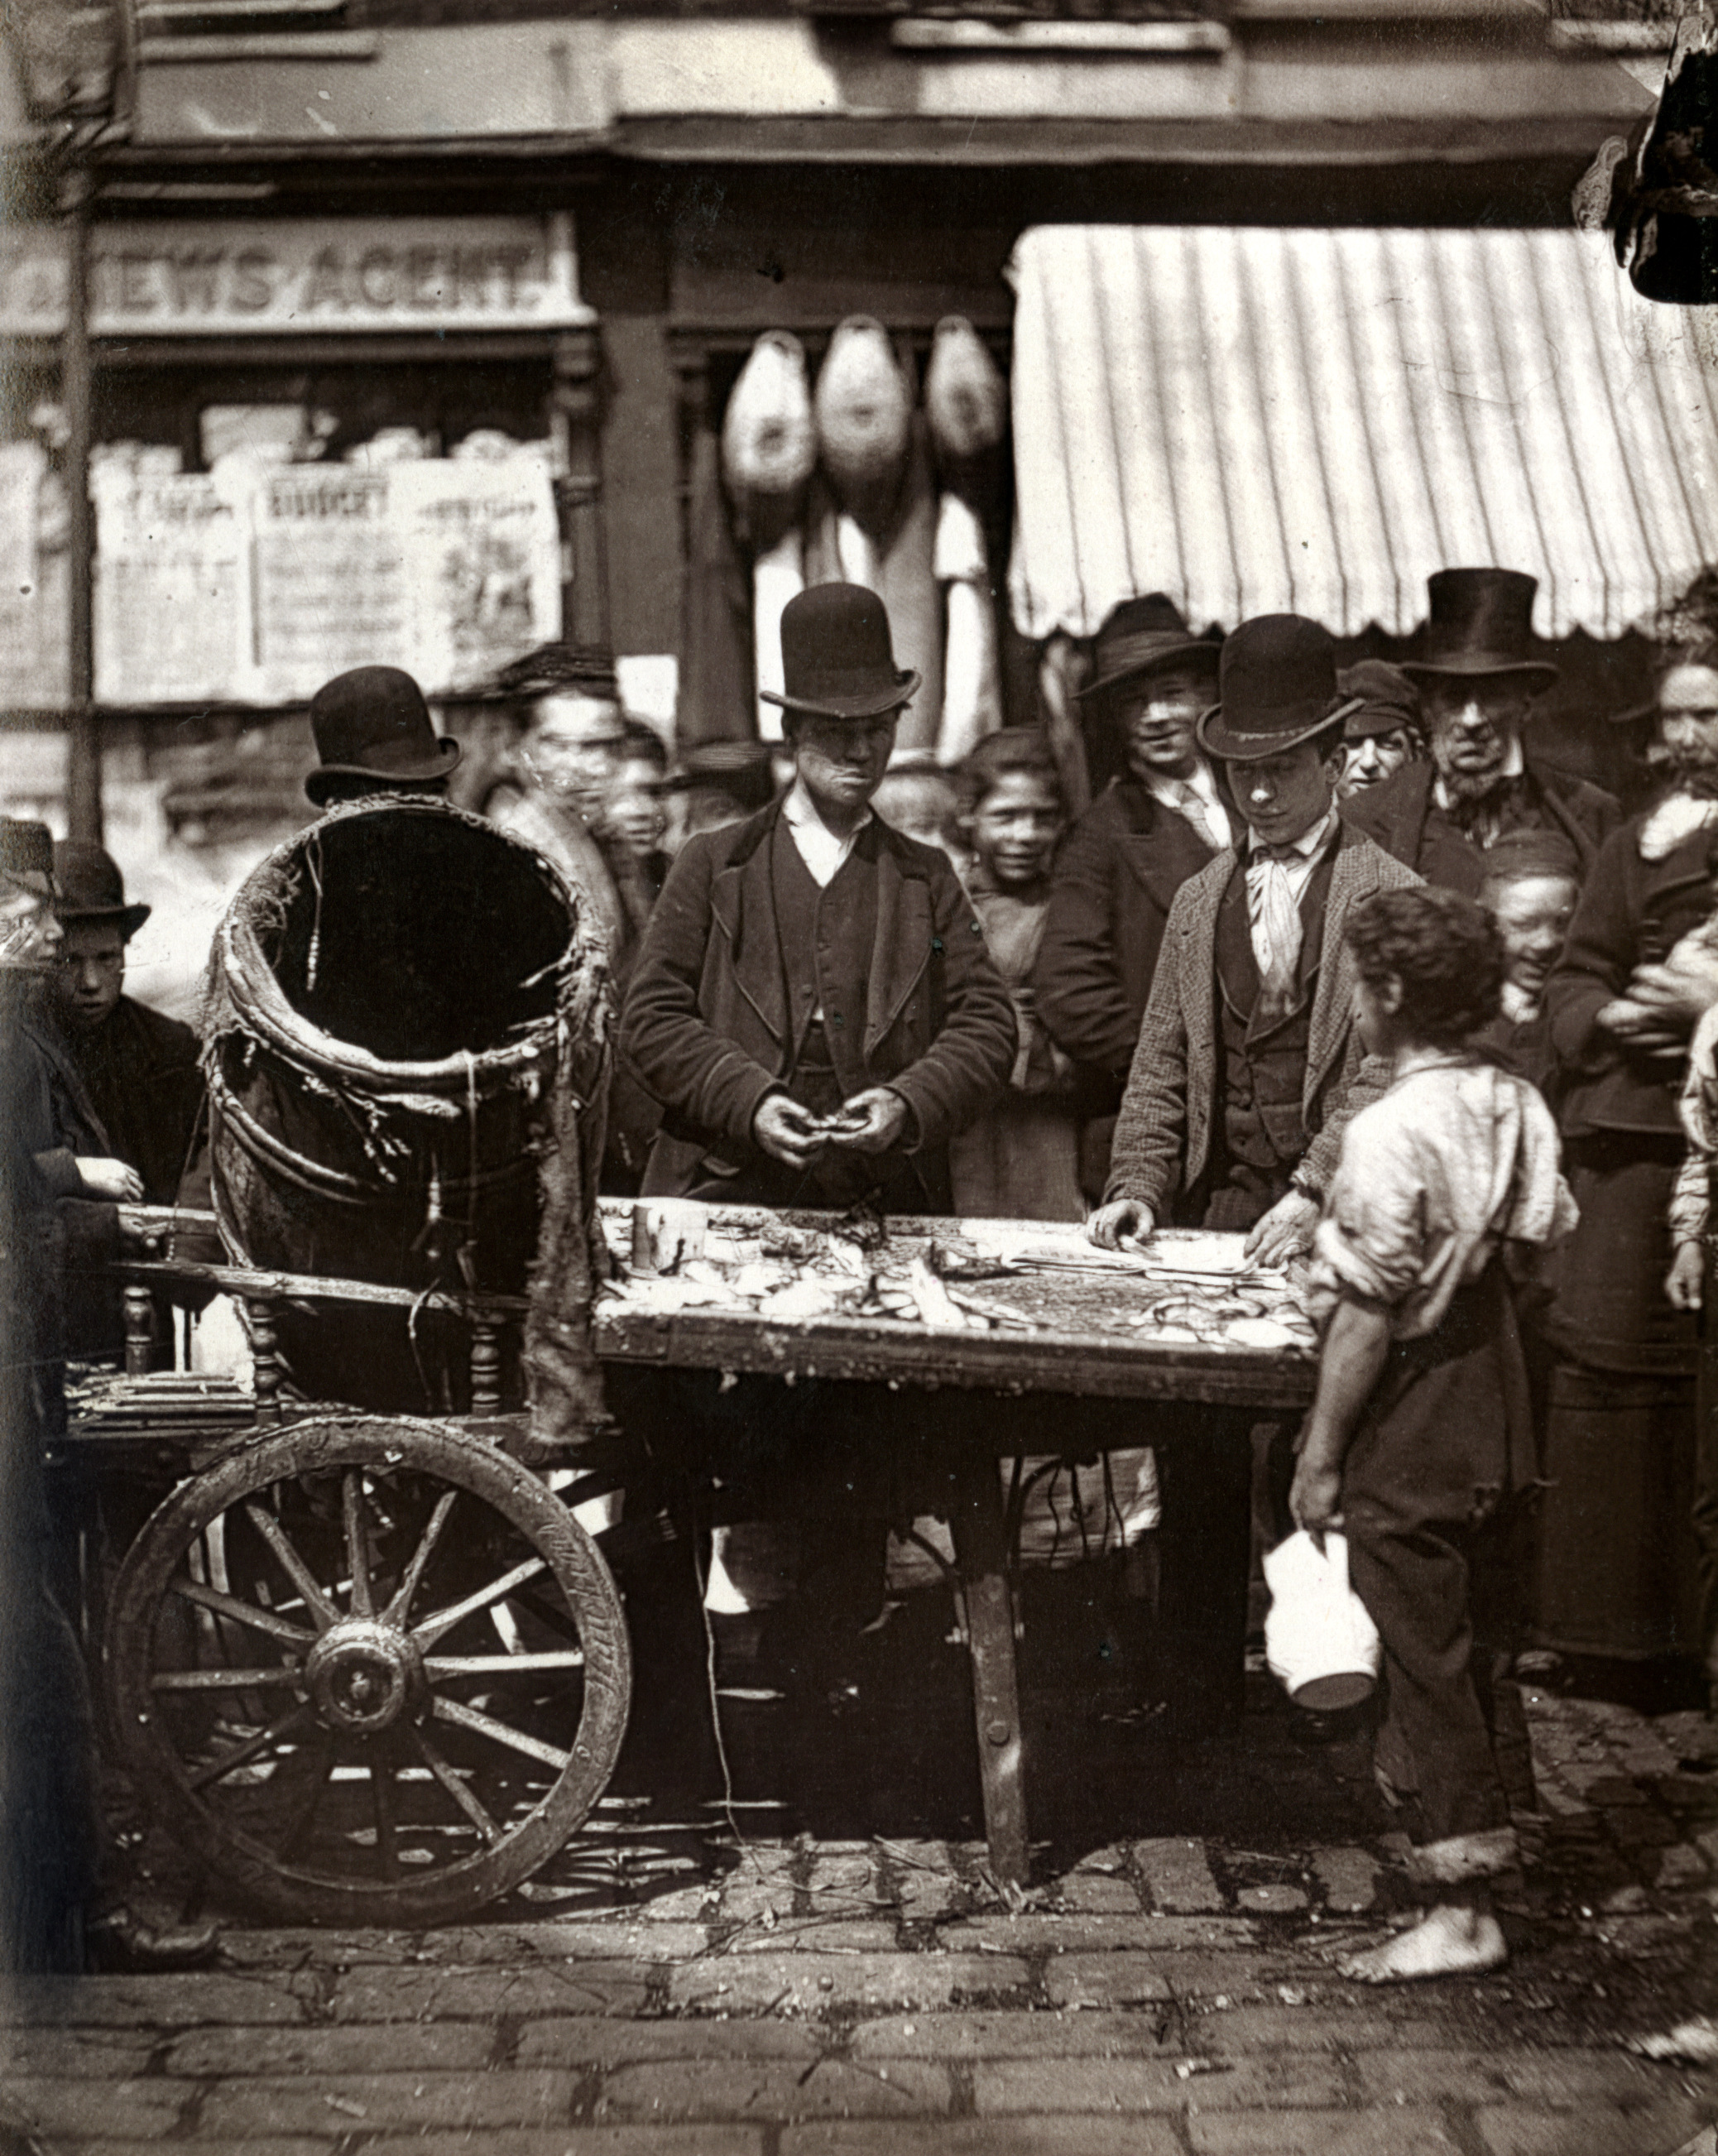 Black and white image of men wearing bowler type hats around a barrow selling fish. There's a boy in the foreground.